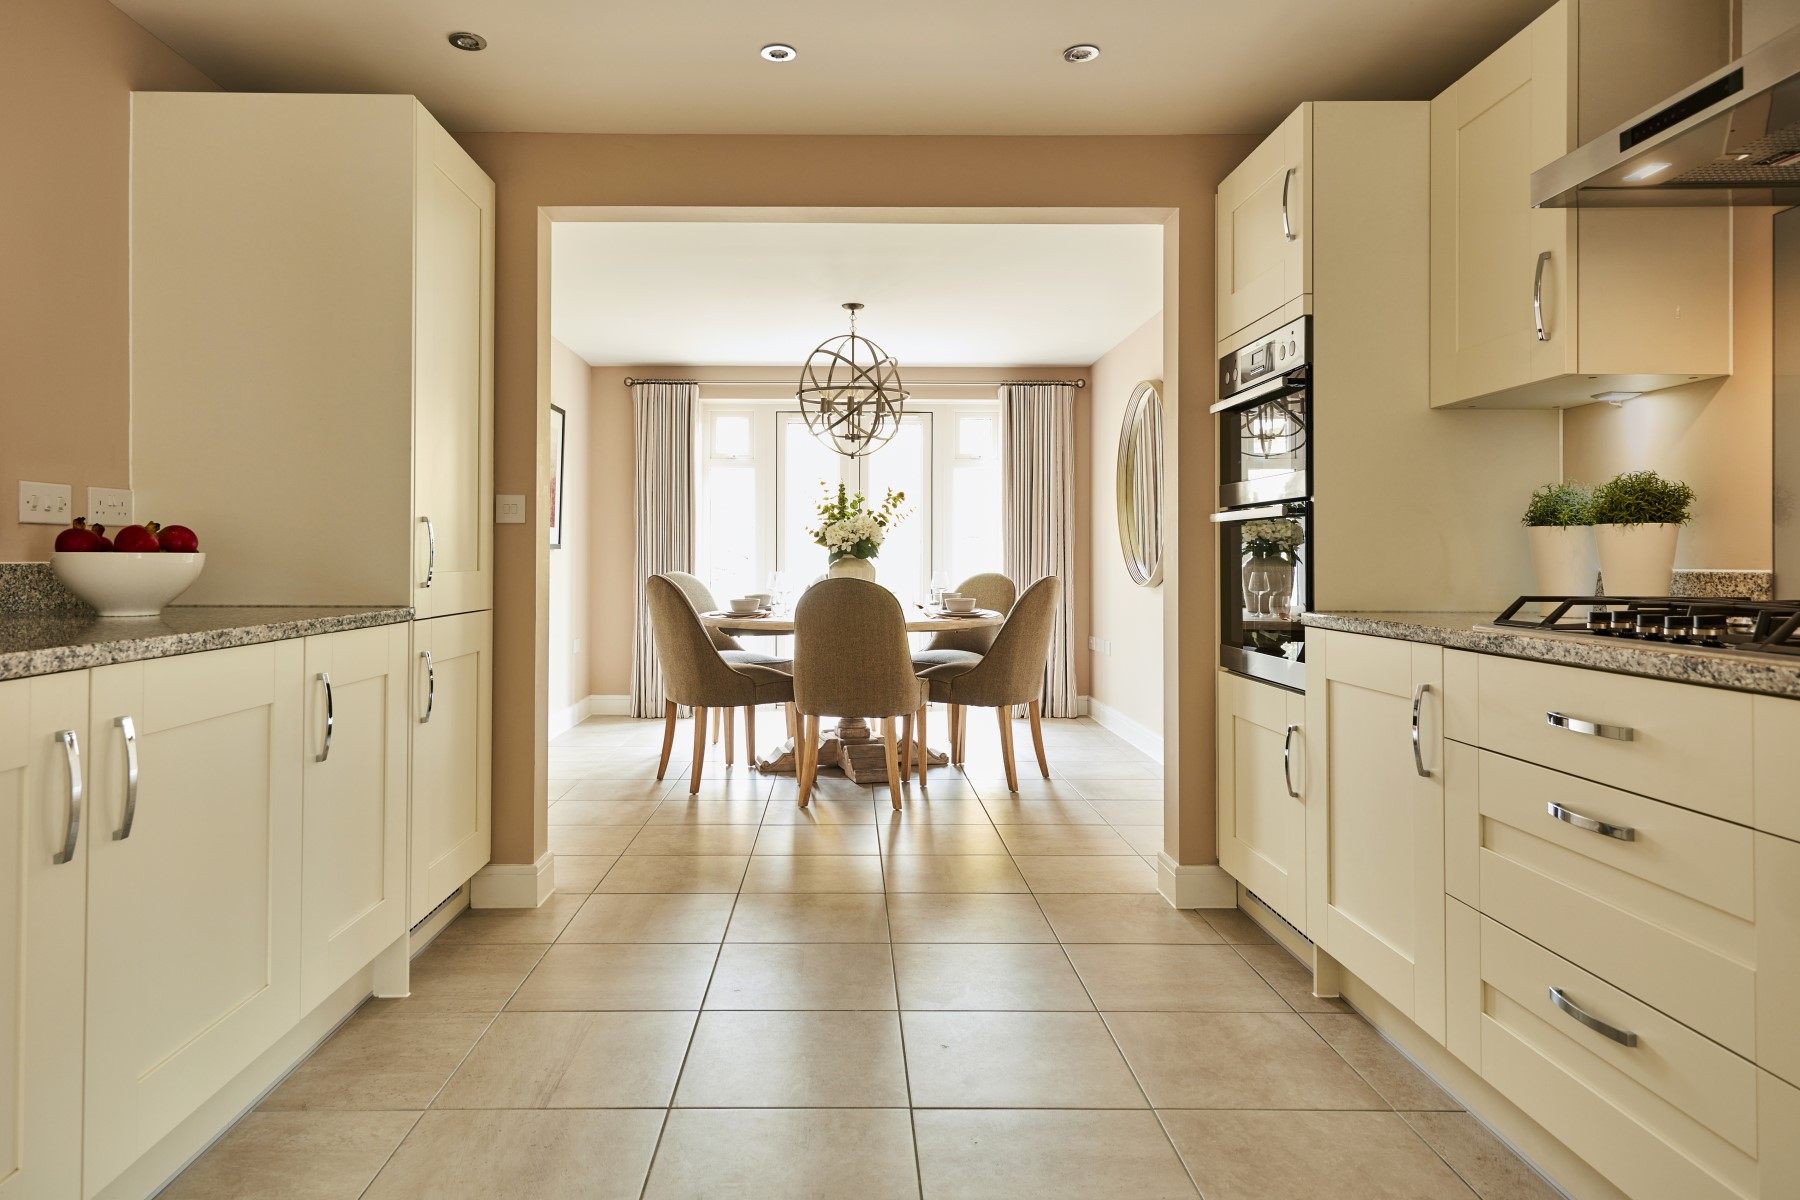 TW OX Thornbury Green_Eynsham_NA45_Marford_Kitchen_Dining